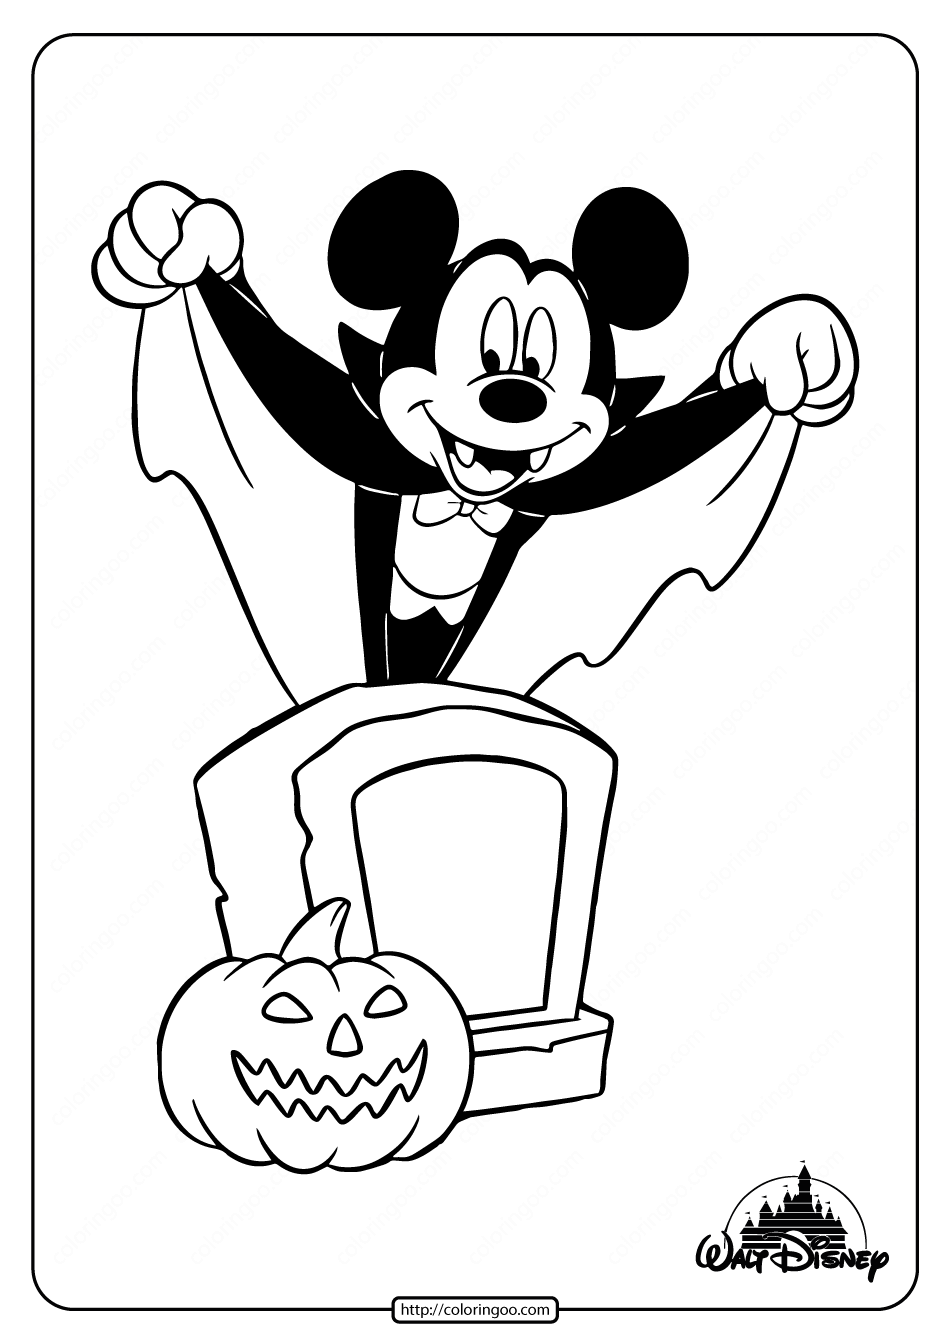 Disney Mickey Mouse Halloween Coloring Pages